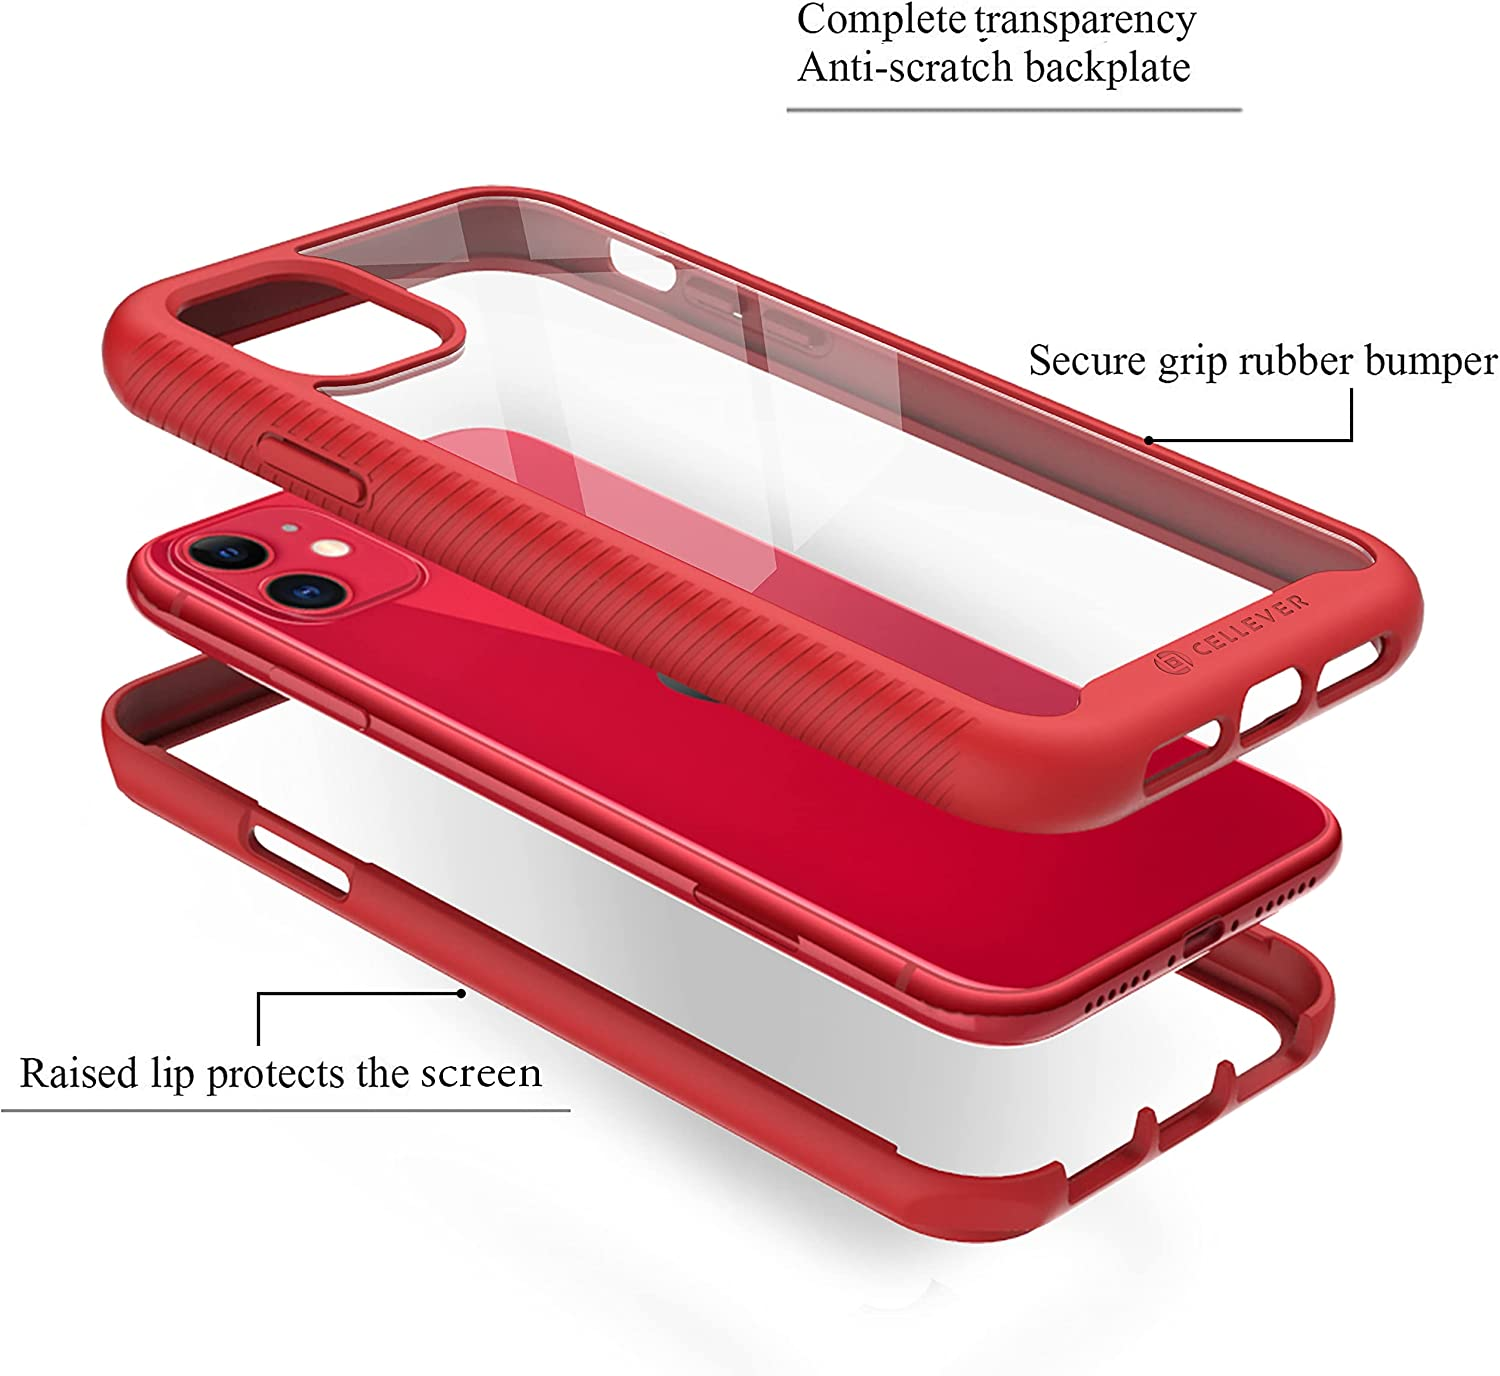 CellEver Compatible with iPhone 11 Case, Clear Full Body Heavy Duty Protective Case Anti-Slip Full Body Transparent Cover Designed for iPhone 11 (2X Glass Screen Protector Included) - Red